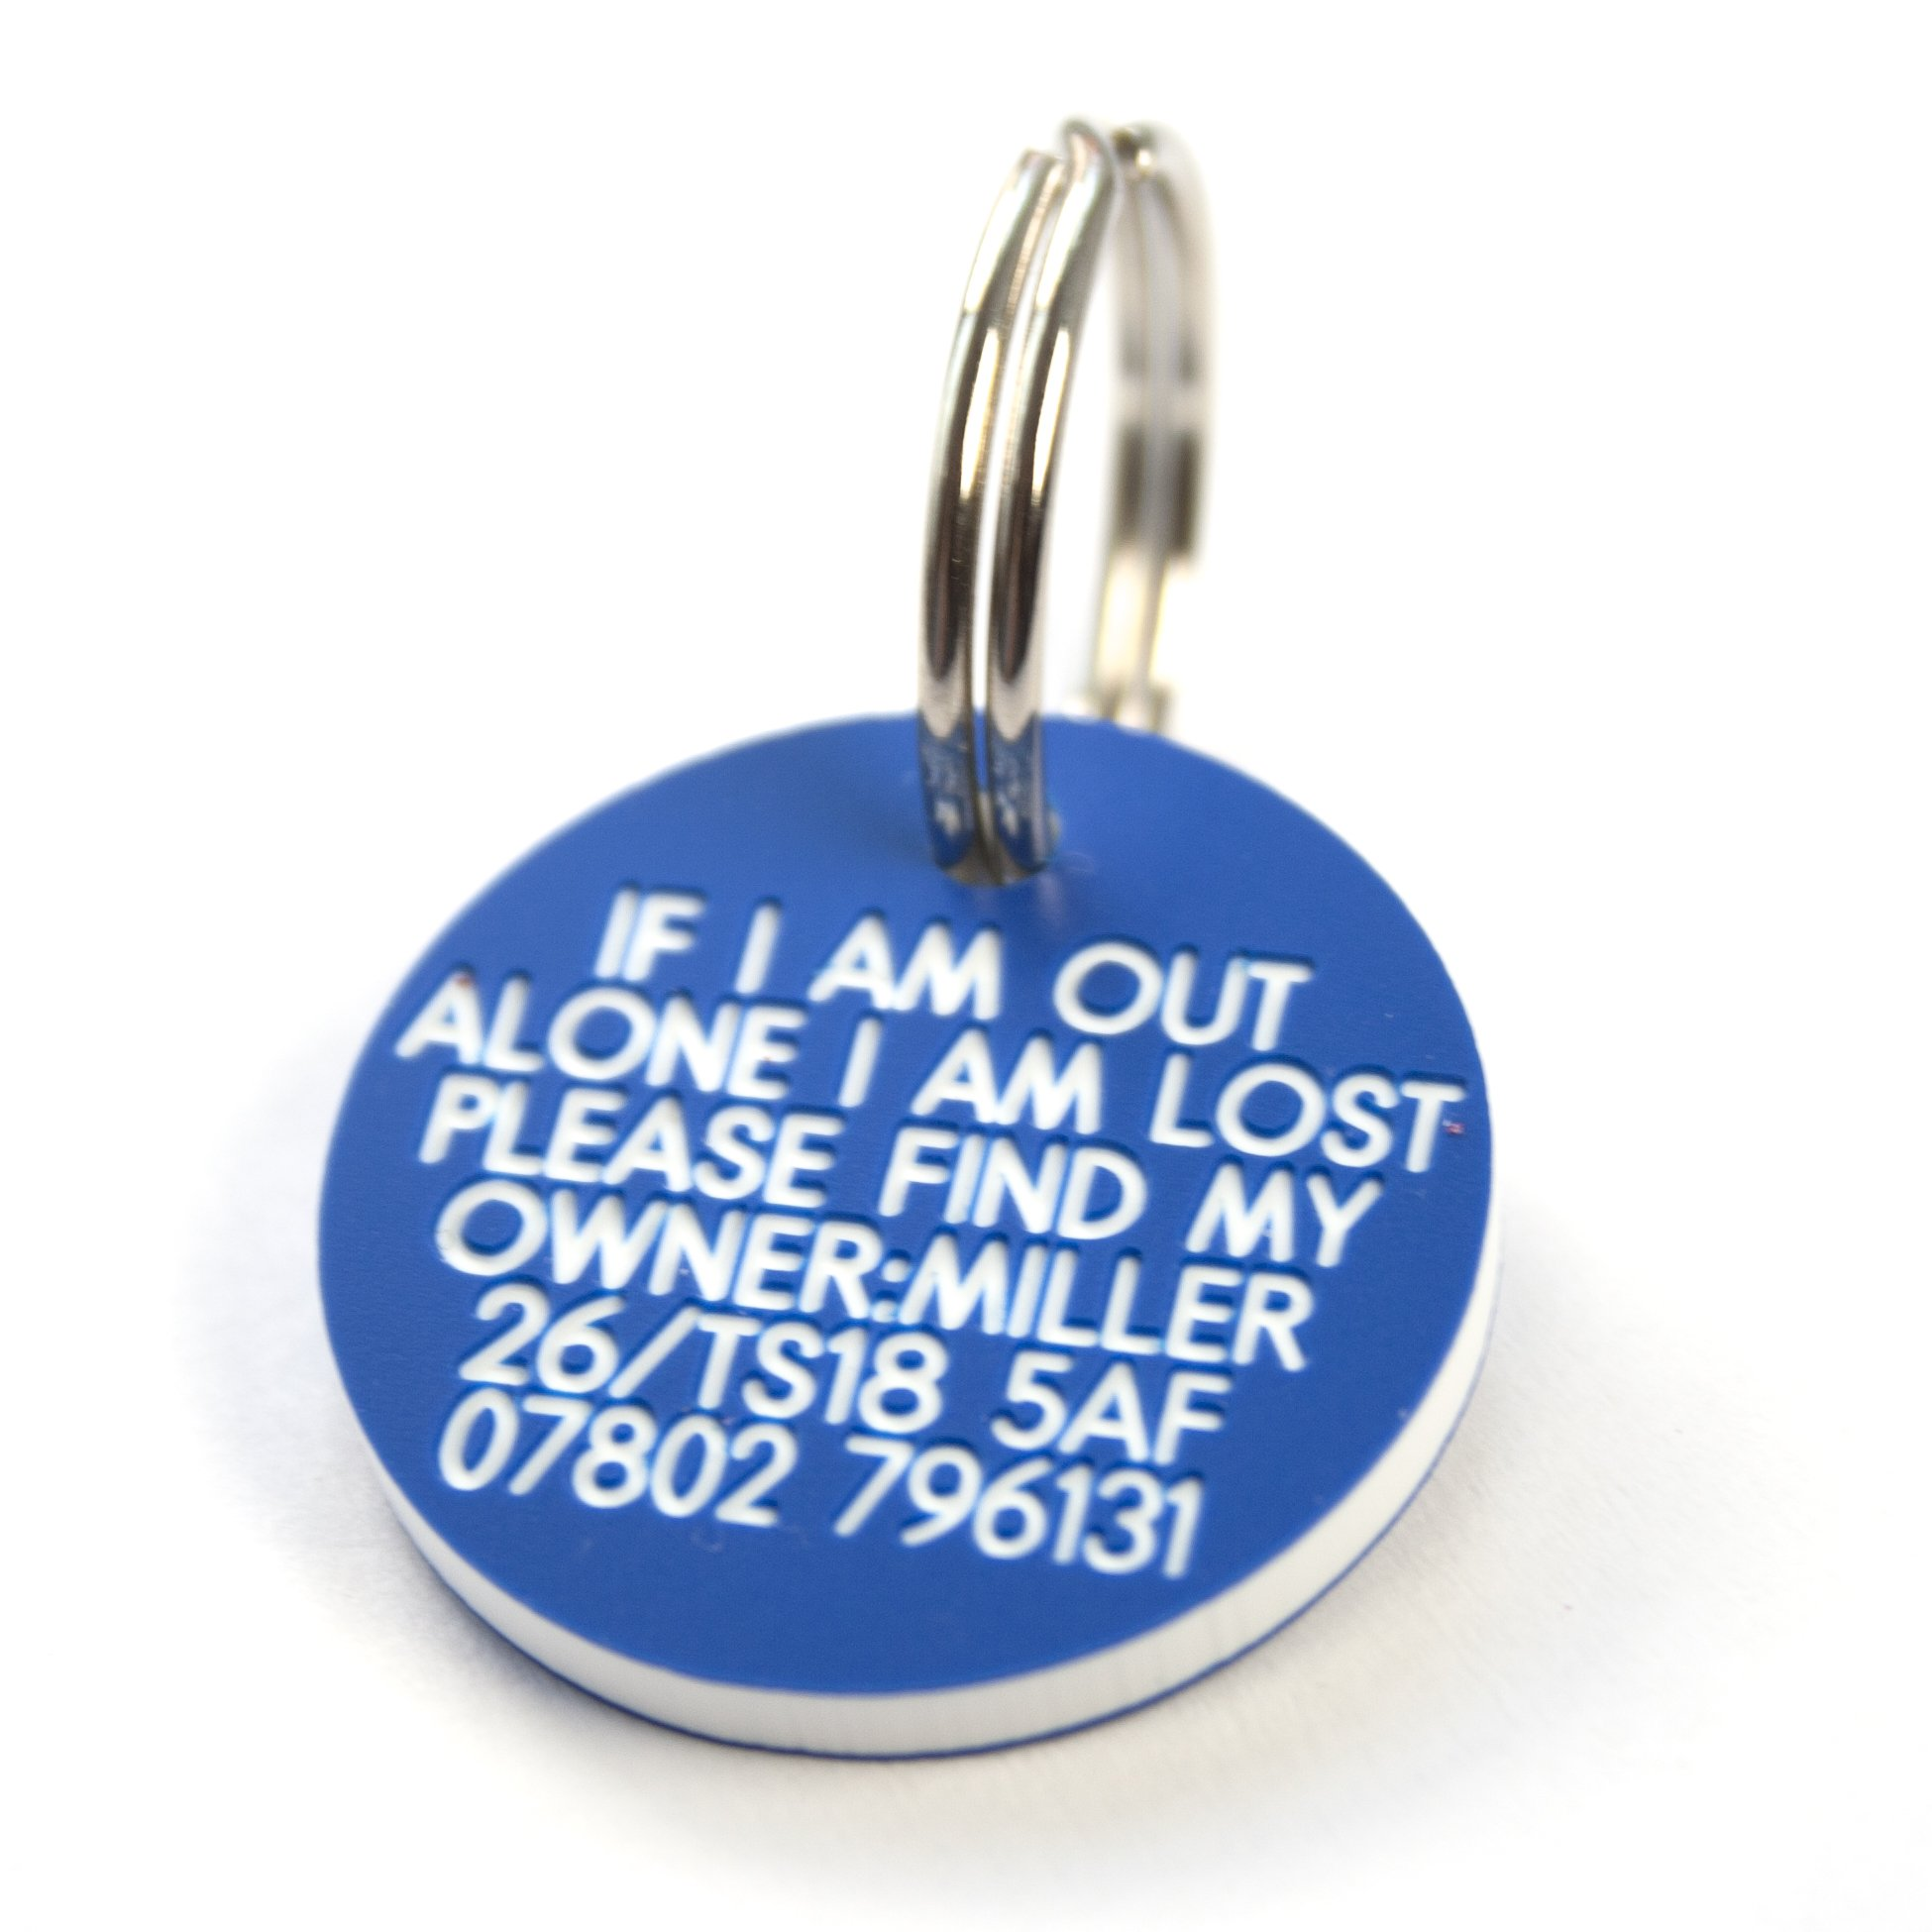 Engraving Studios Deeply engraved blue plastic 27mm circular dog tag